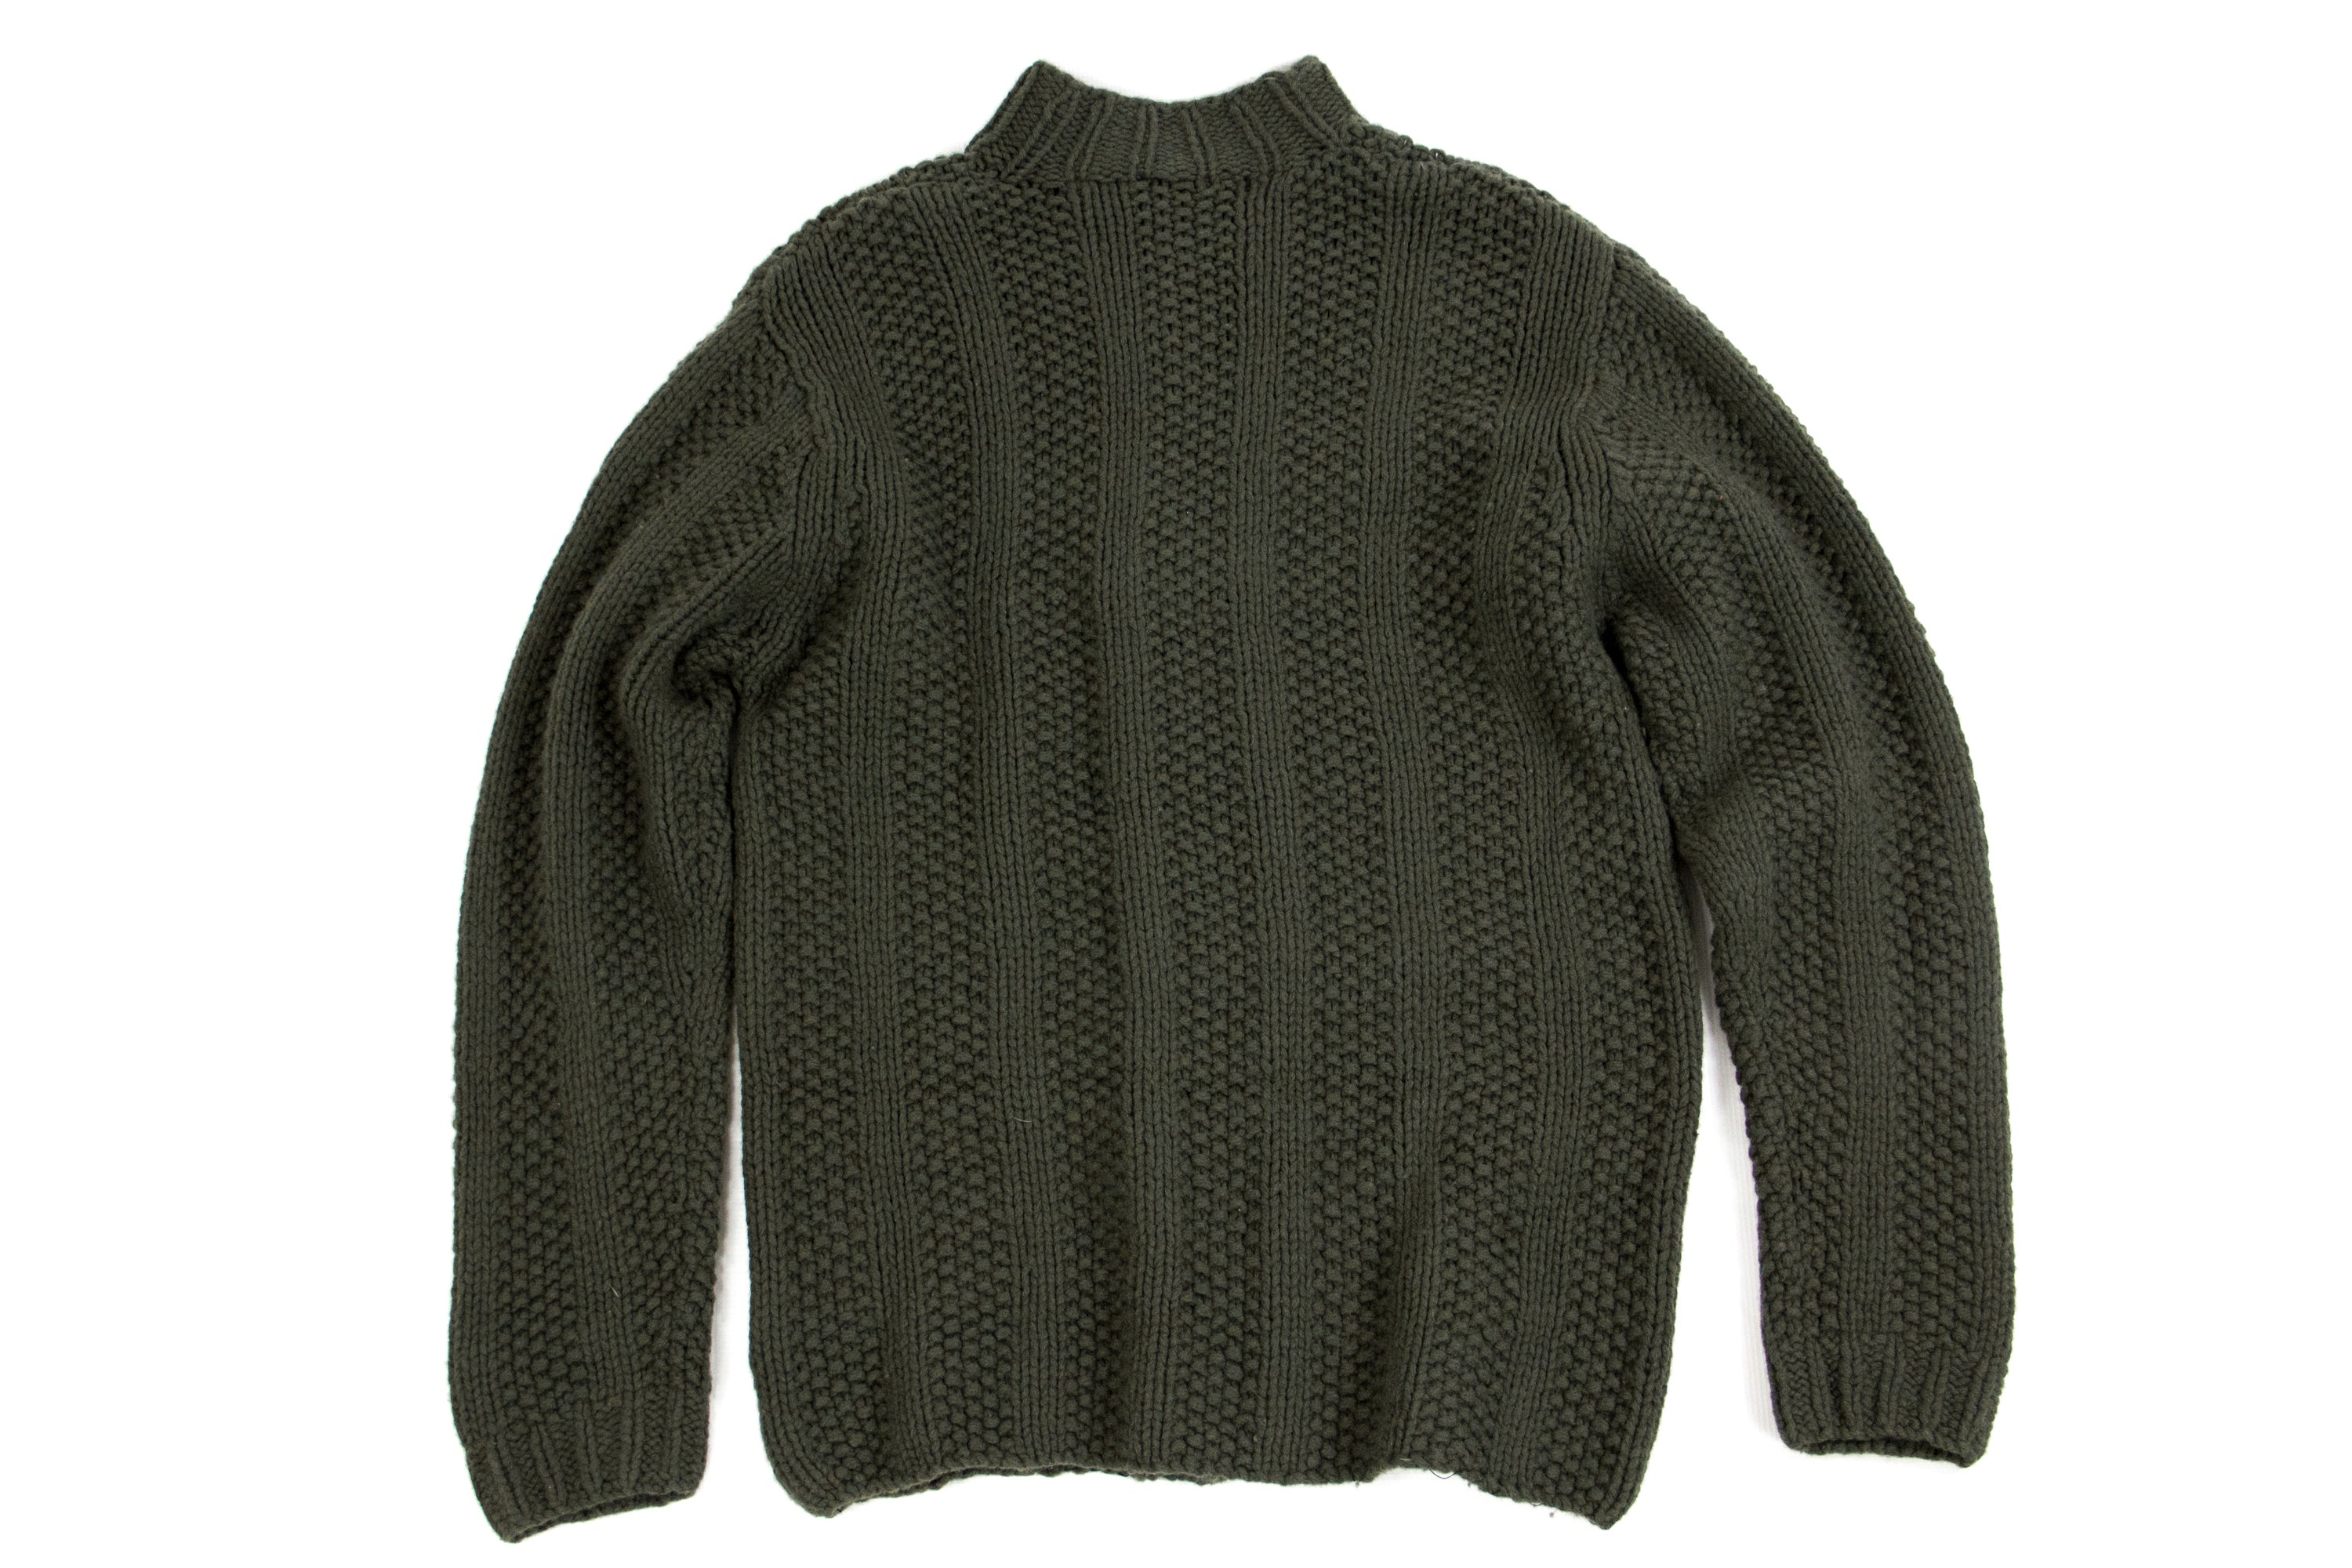 TIMBERLAND Chunky Lambswool Dark Green Handknit Jumper Sweater SIZE XL - secondfirst